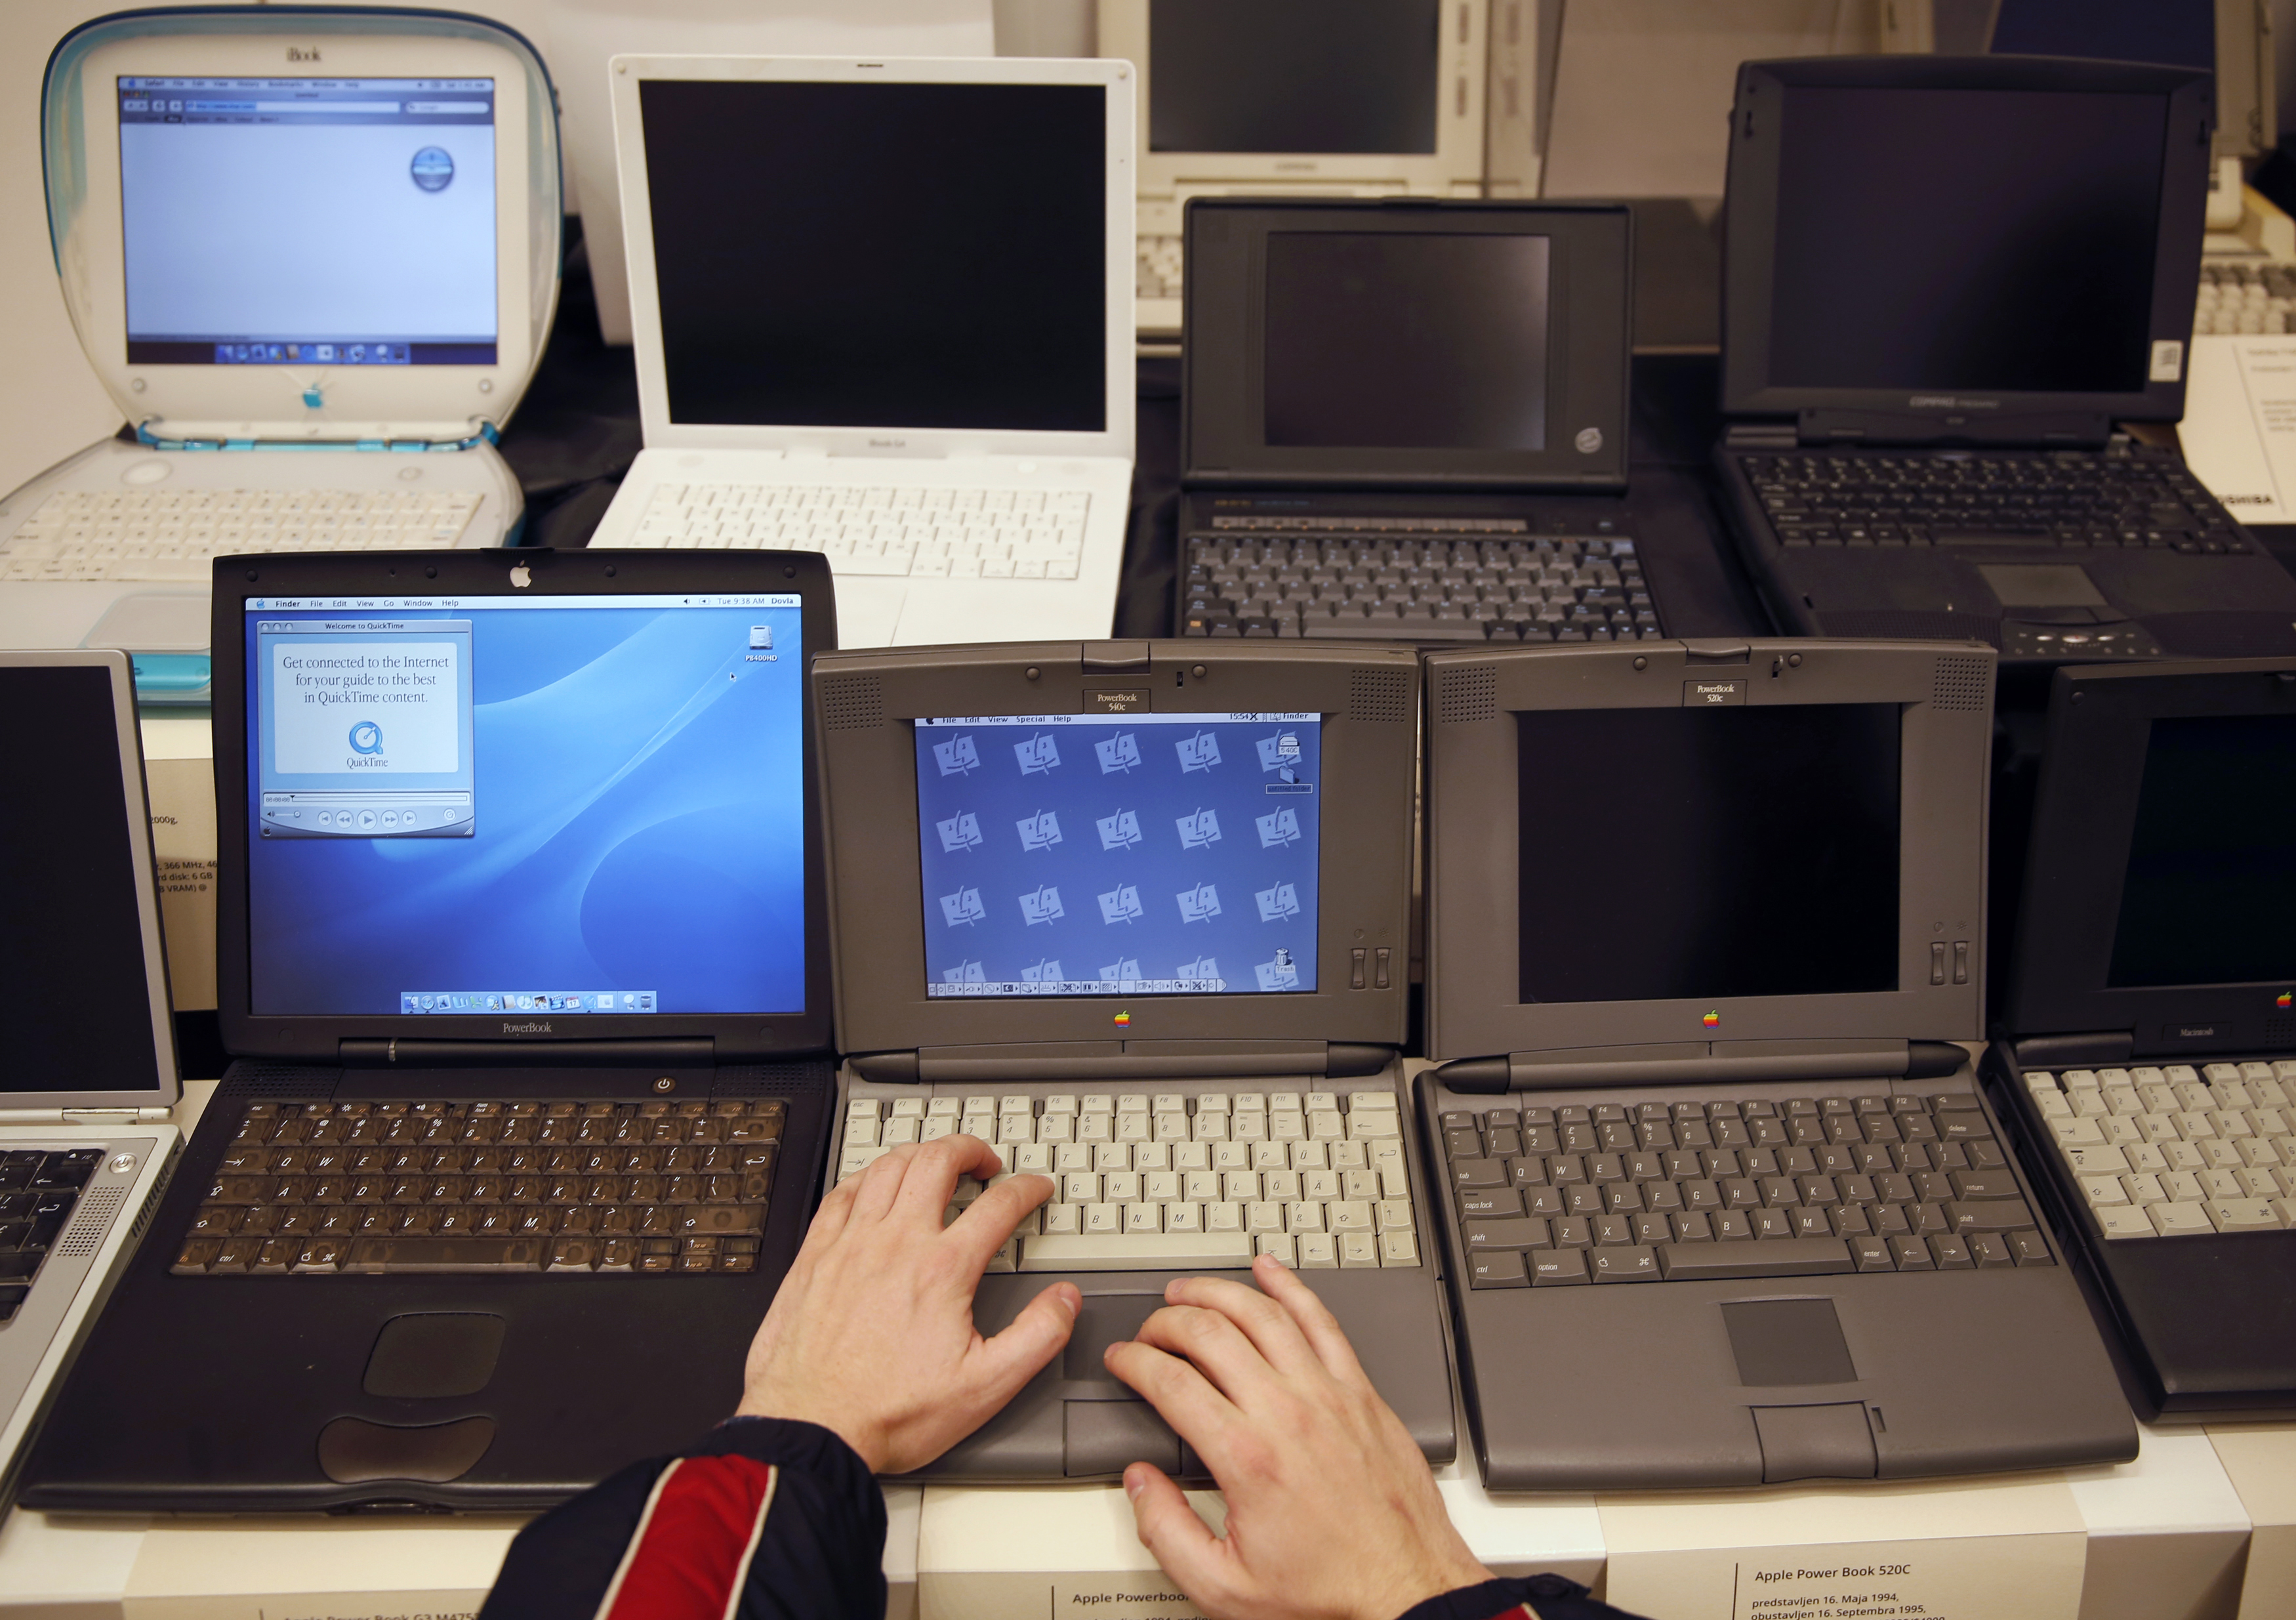 A man works on an Apple PowerBook 540c laptop during the